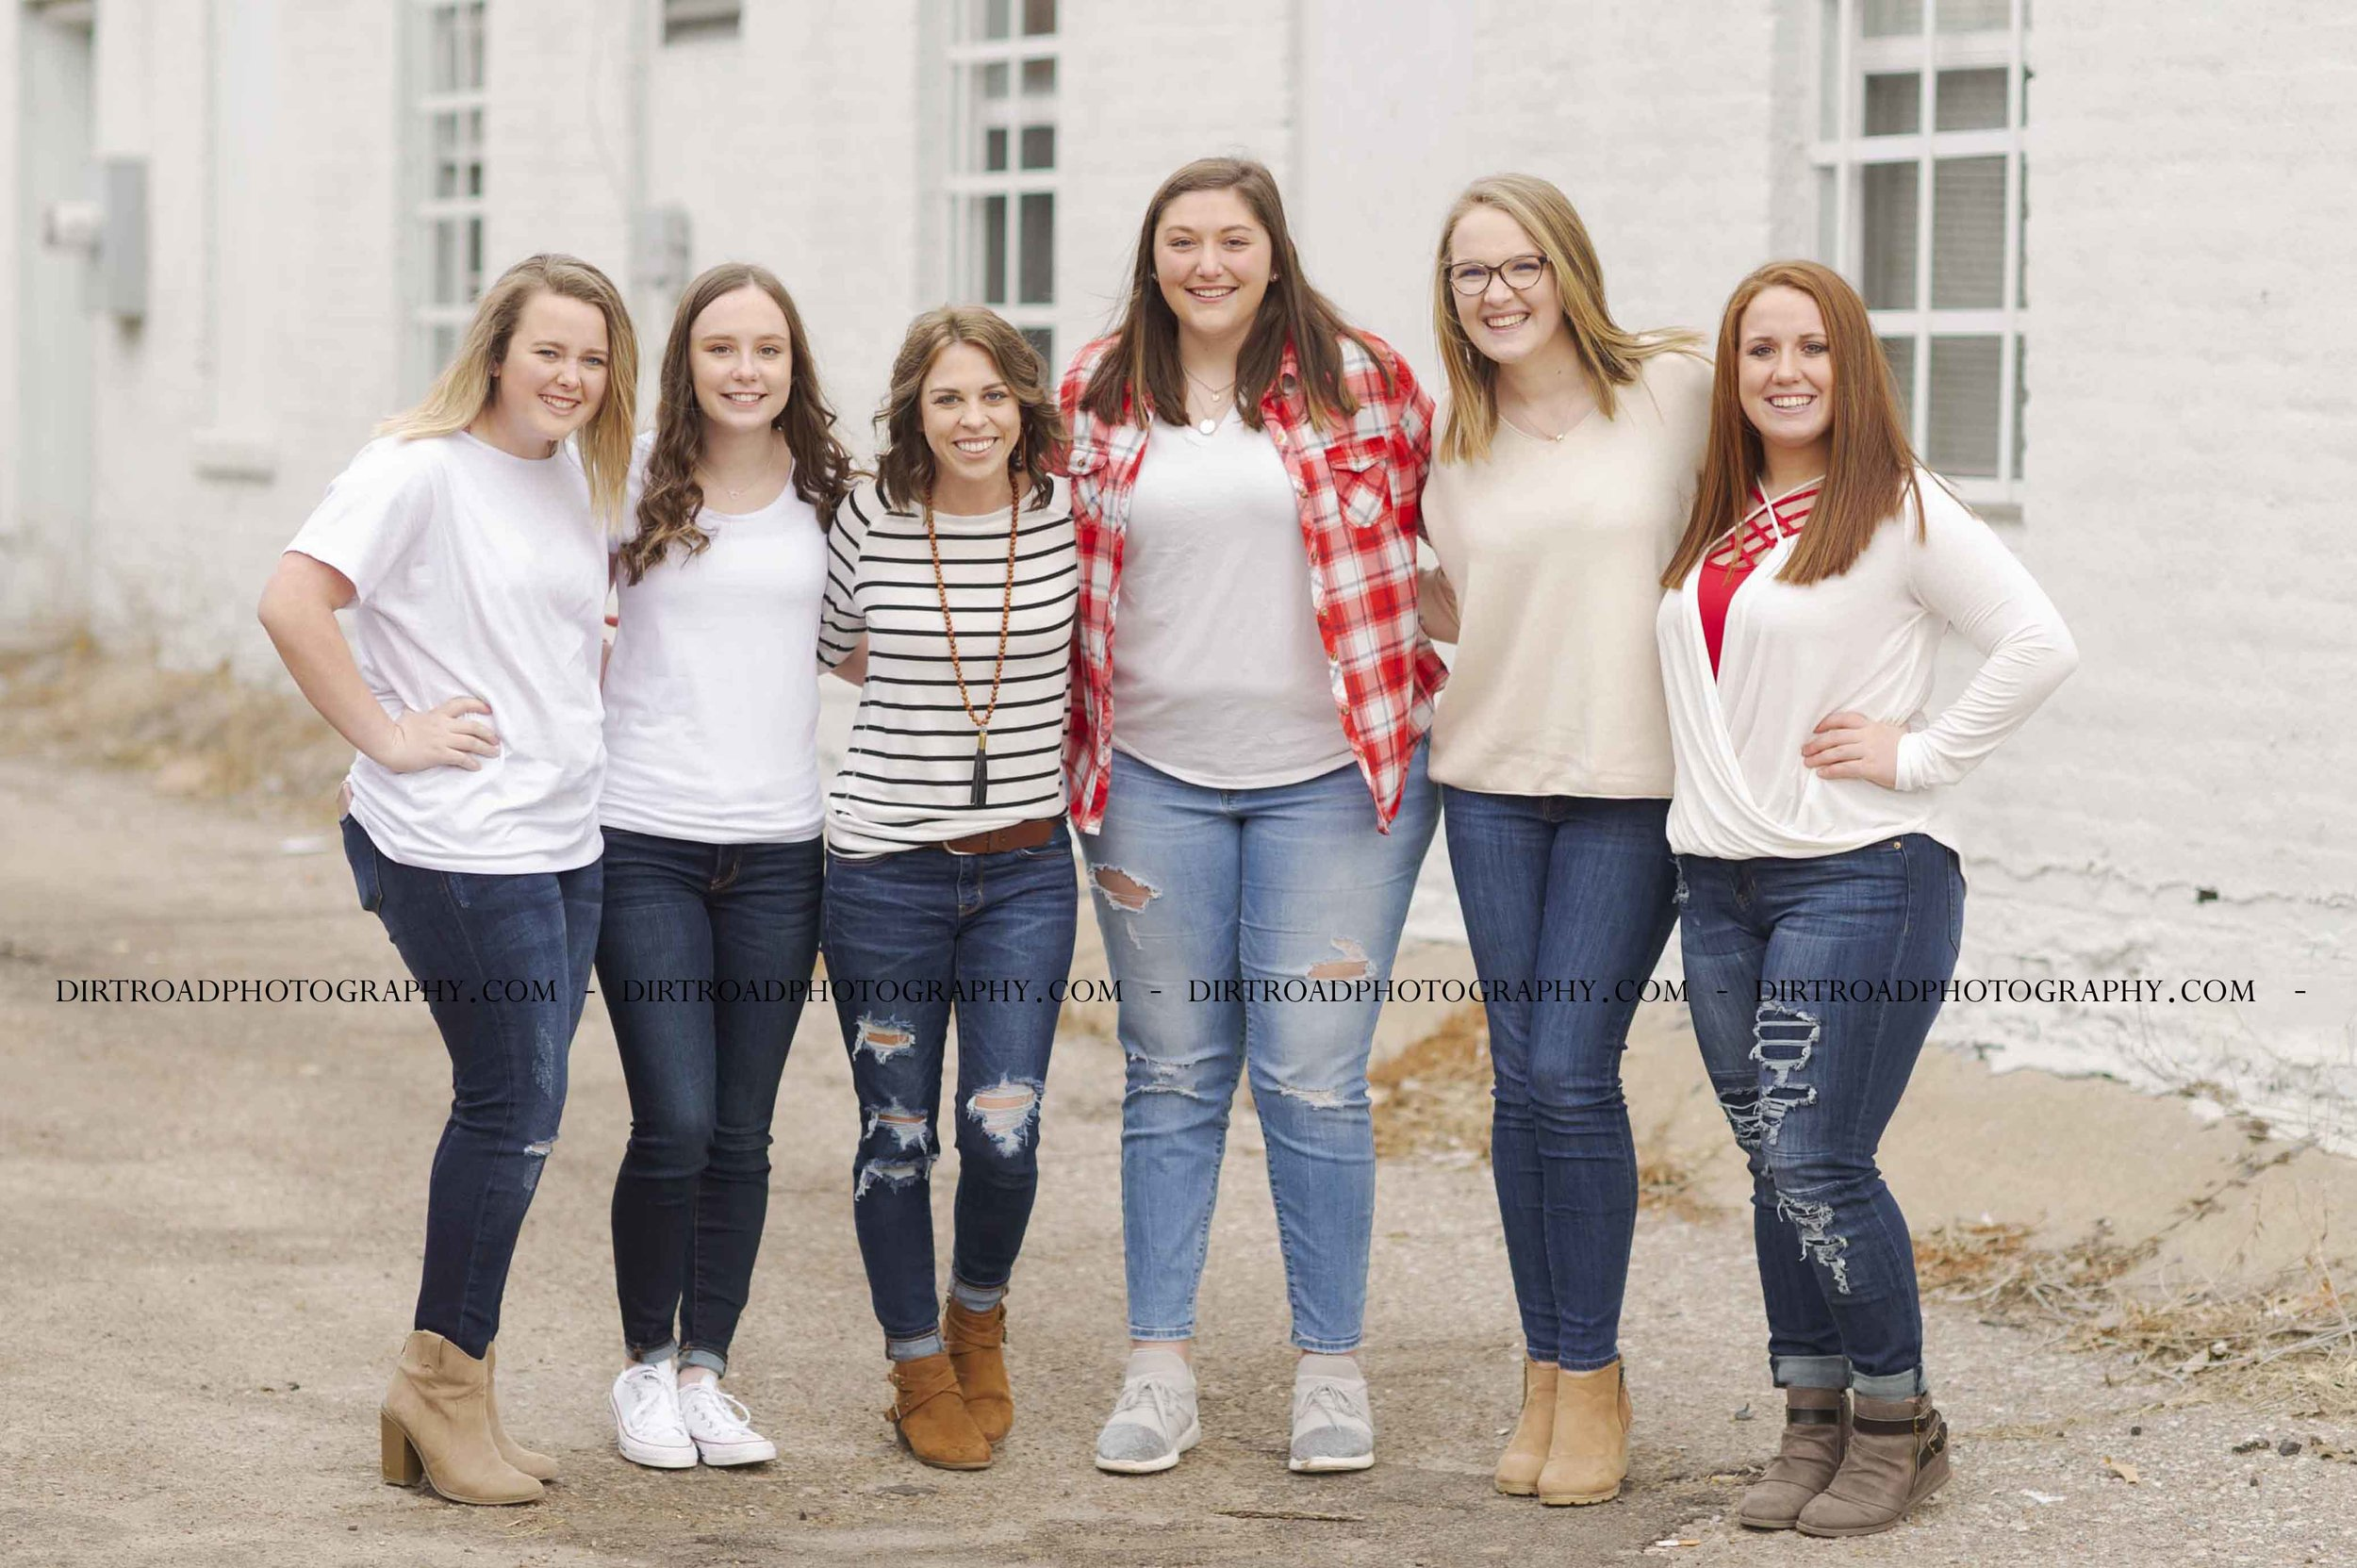 picture of high school senior girls from high schools in nebraska including wilber-clatonia high school, milford high school, friend high school, tri-county high school and norris high school. girls are in blue jeans with cream and white sweaters and winter boots, laughing with each other in an urban alley with white brick wall behind them. girls talking and taking pictures for high school photography dirt road photography by kelsey homolka nerud photographer.